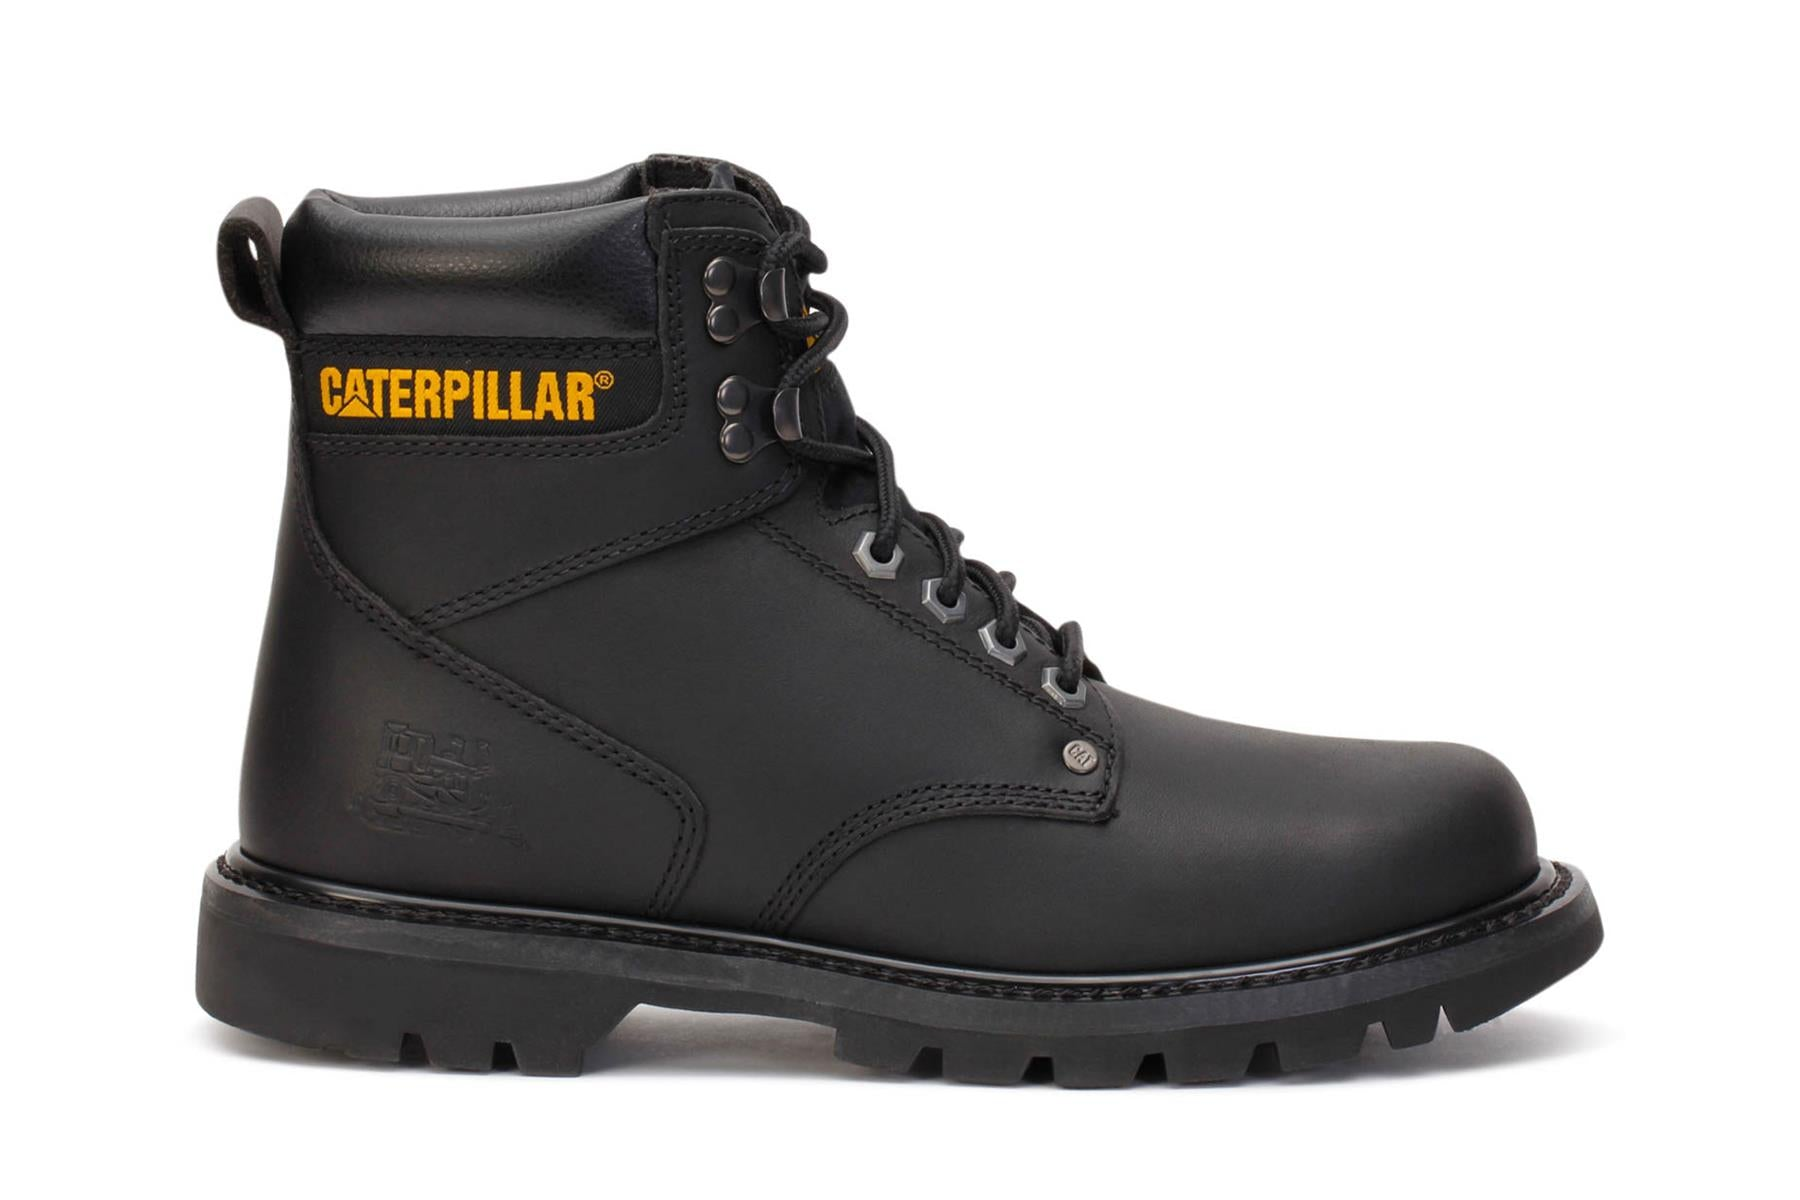 caterpillar-mens-work-boots-second-shift-black-leather-p70043-main